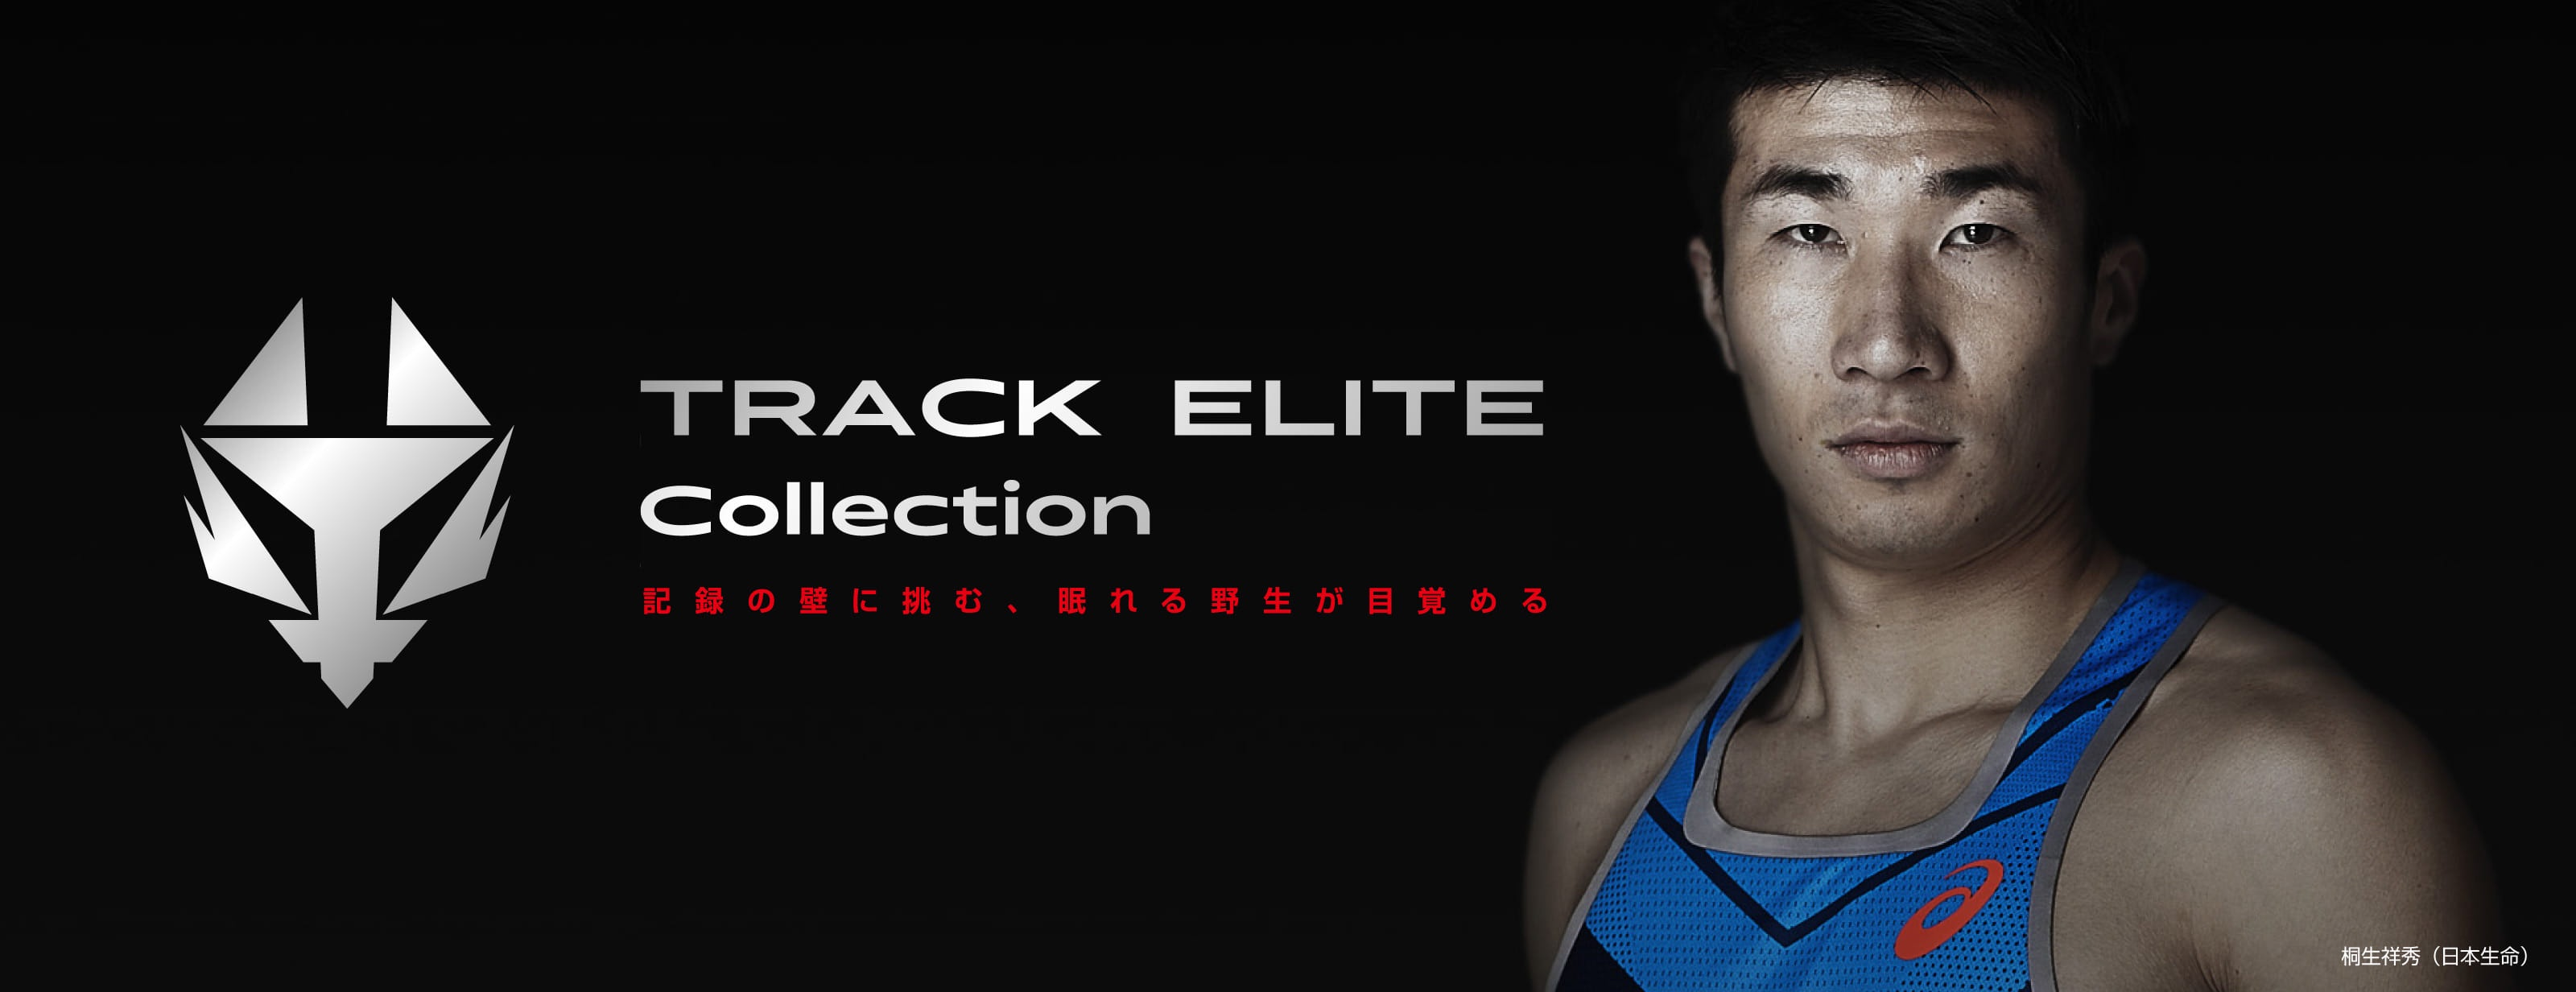 T&F track elite hero pc